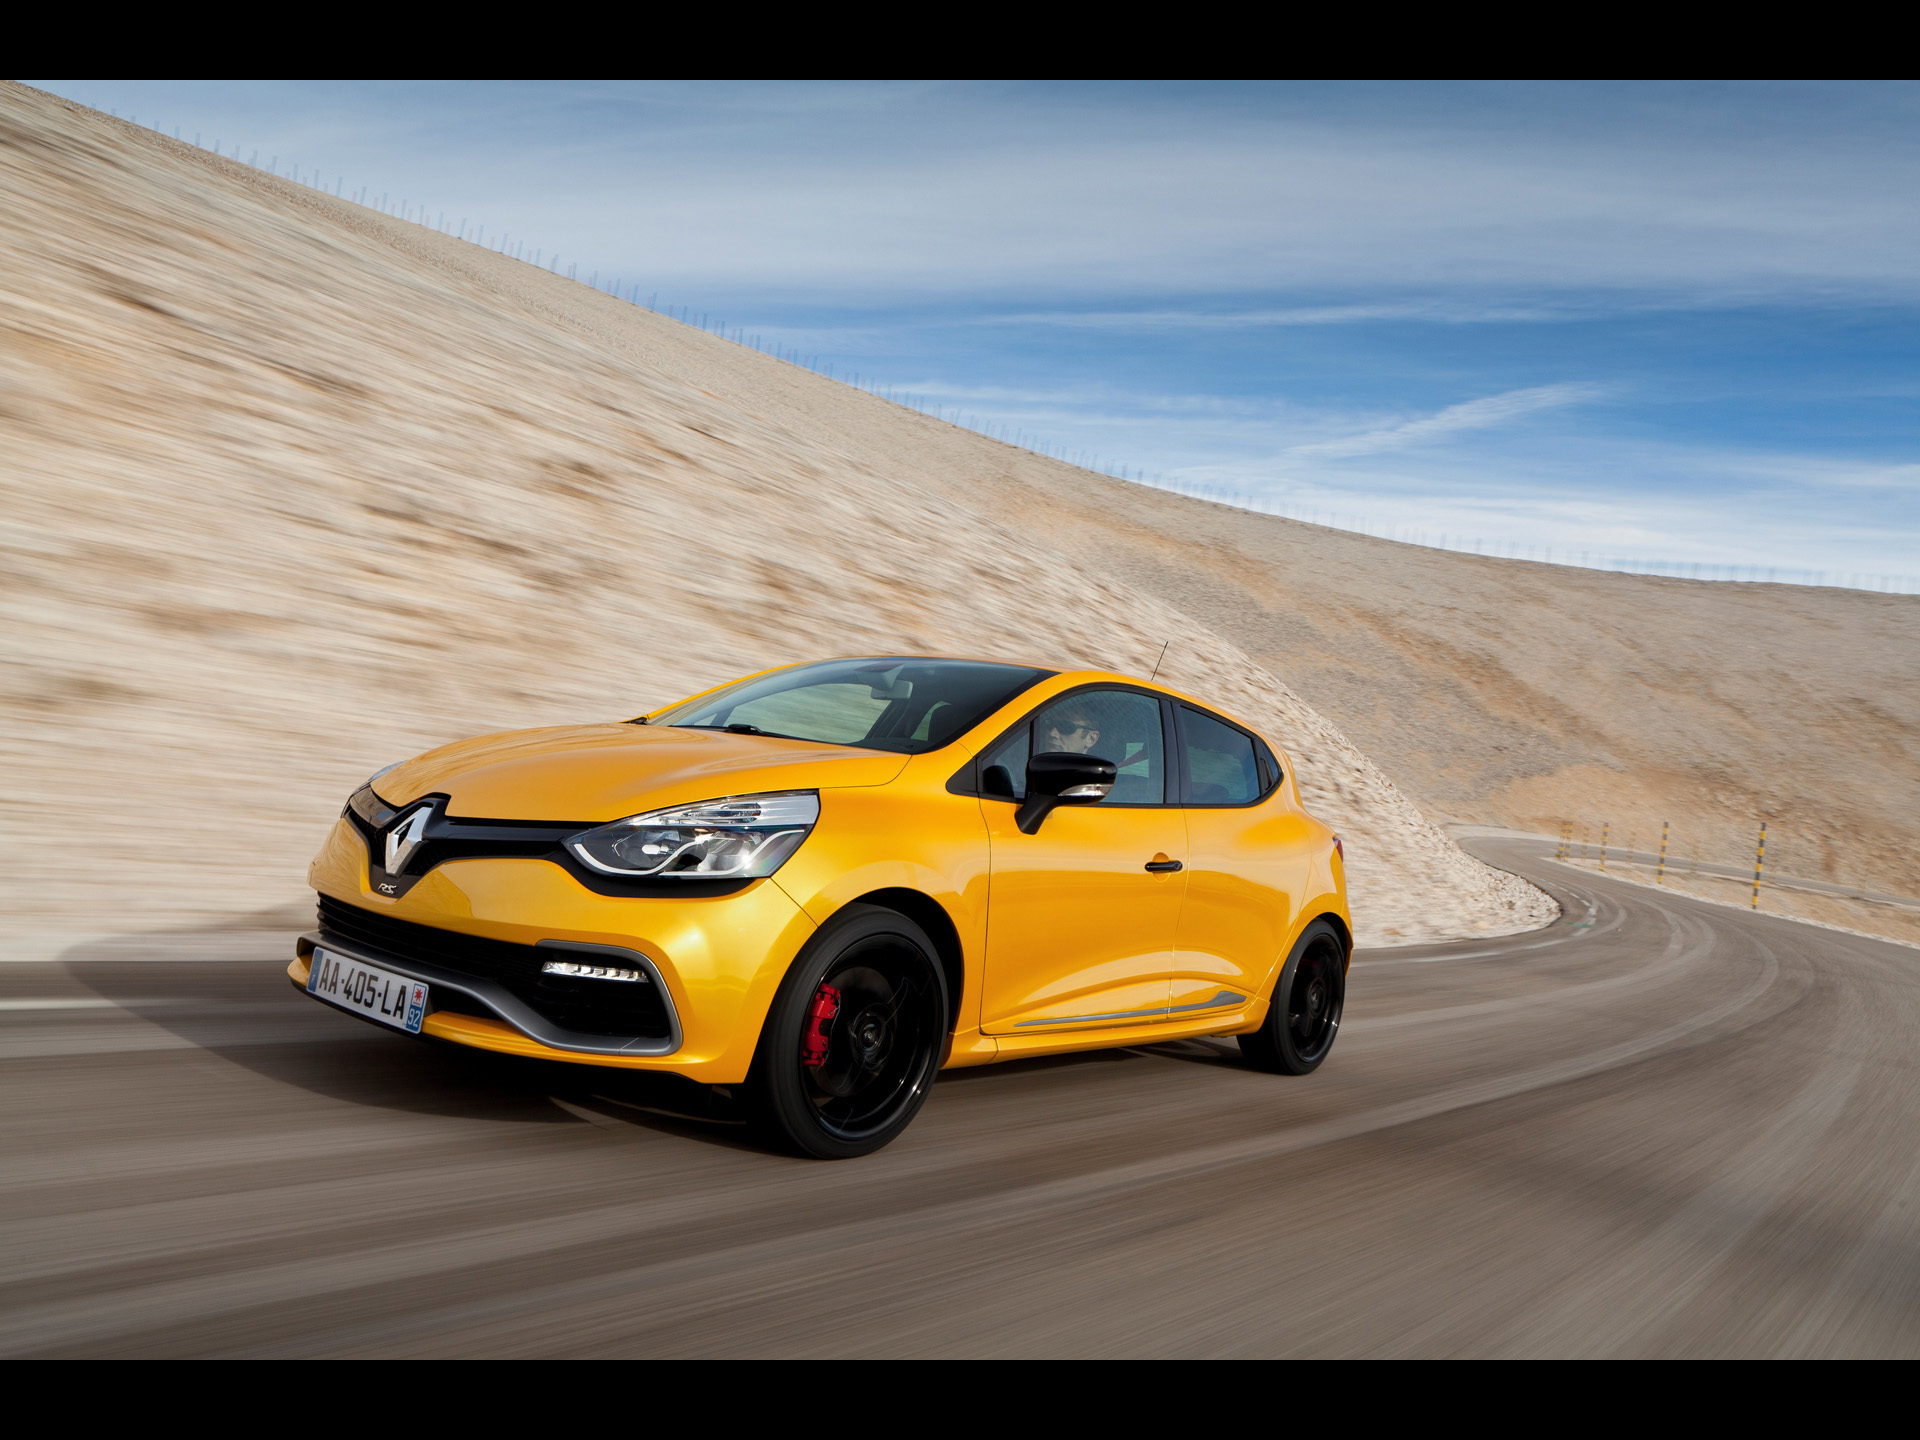 click to free download the wallpaper--Pics of Super Cars, Renault Clio RS on a Slope, Speed is Never a Concern 1920X1440 free wallpaper download